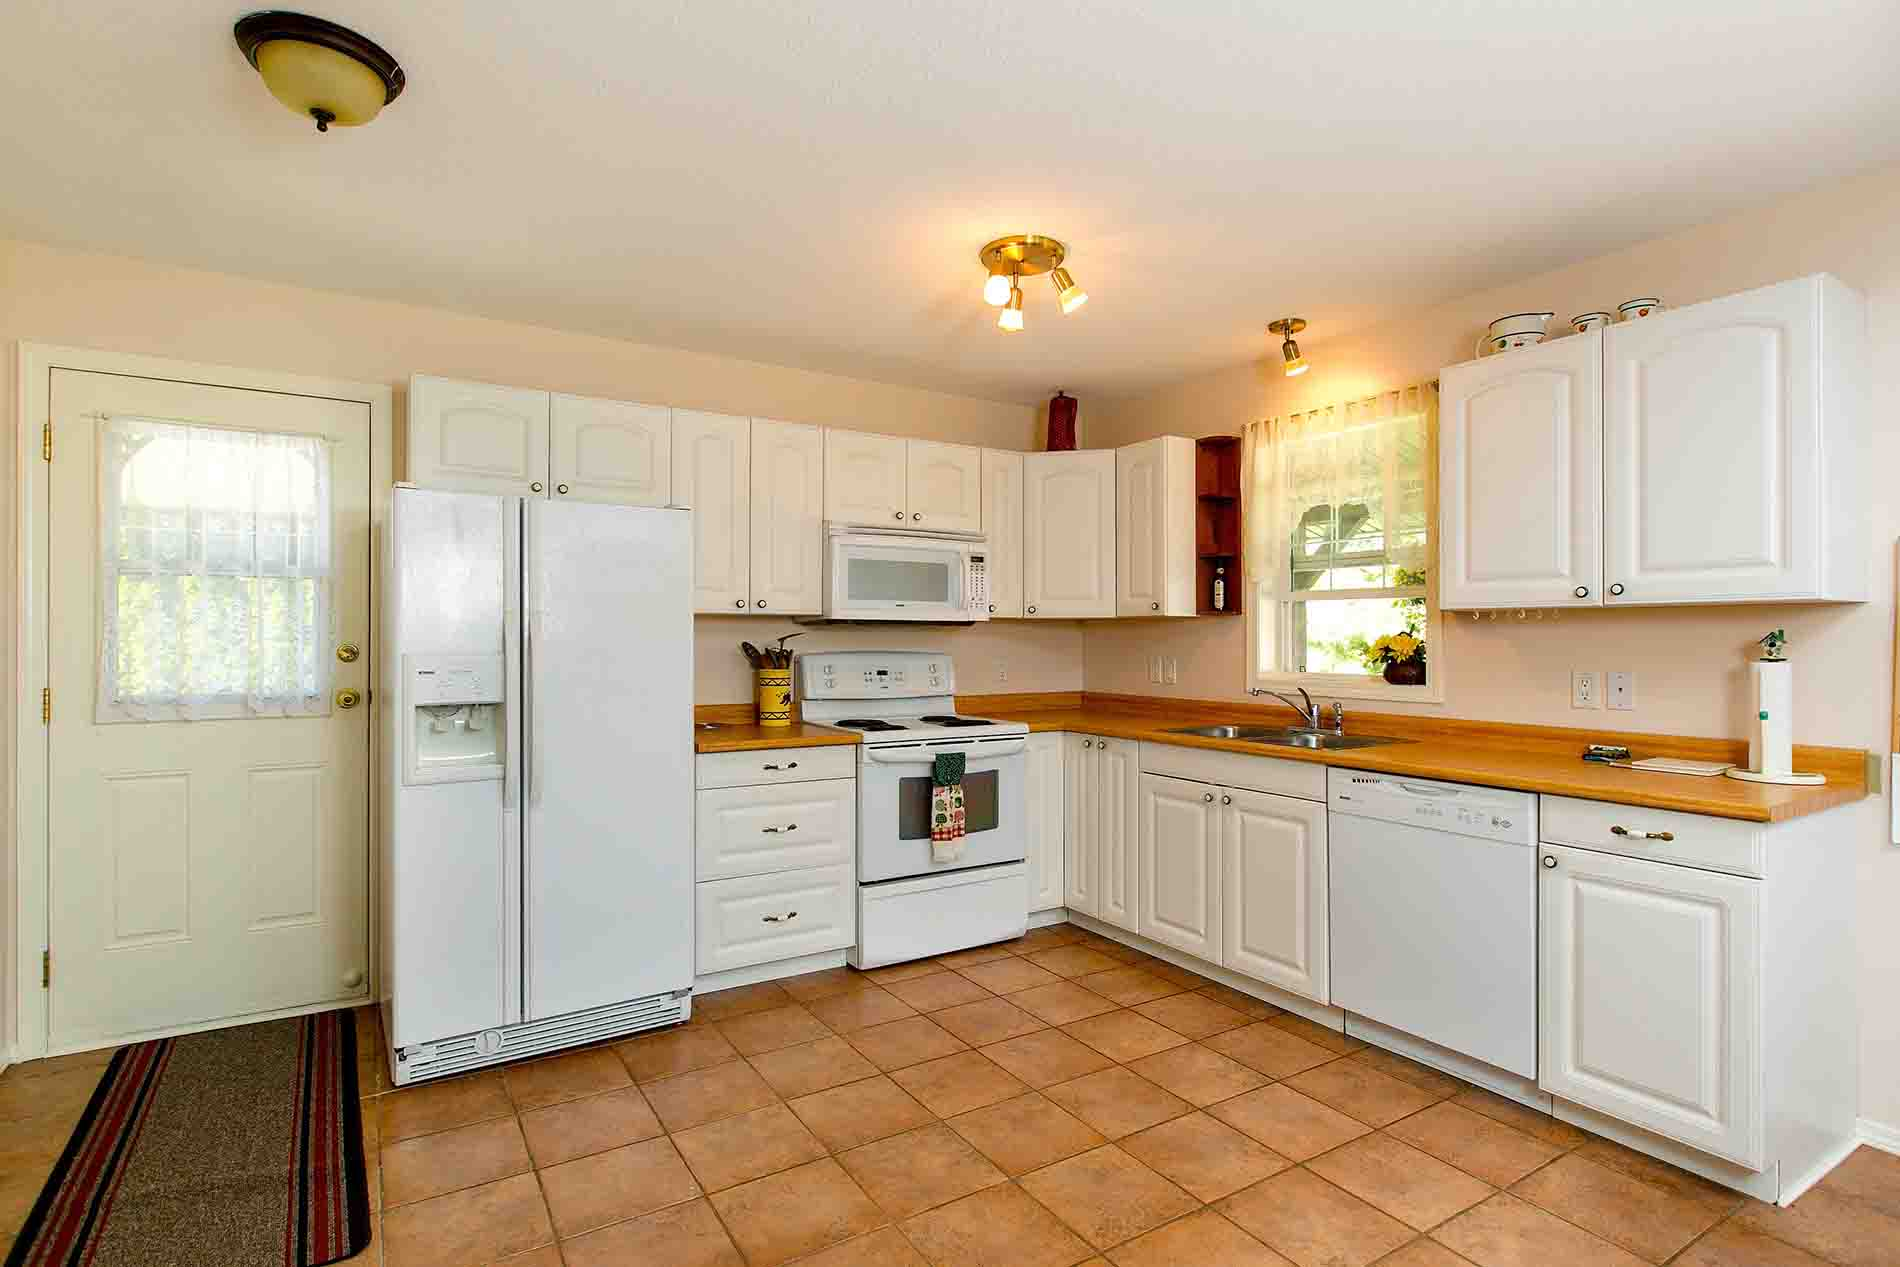 Kitchen 2 Bedroom Rental Home Peachland